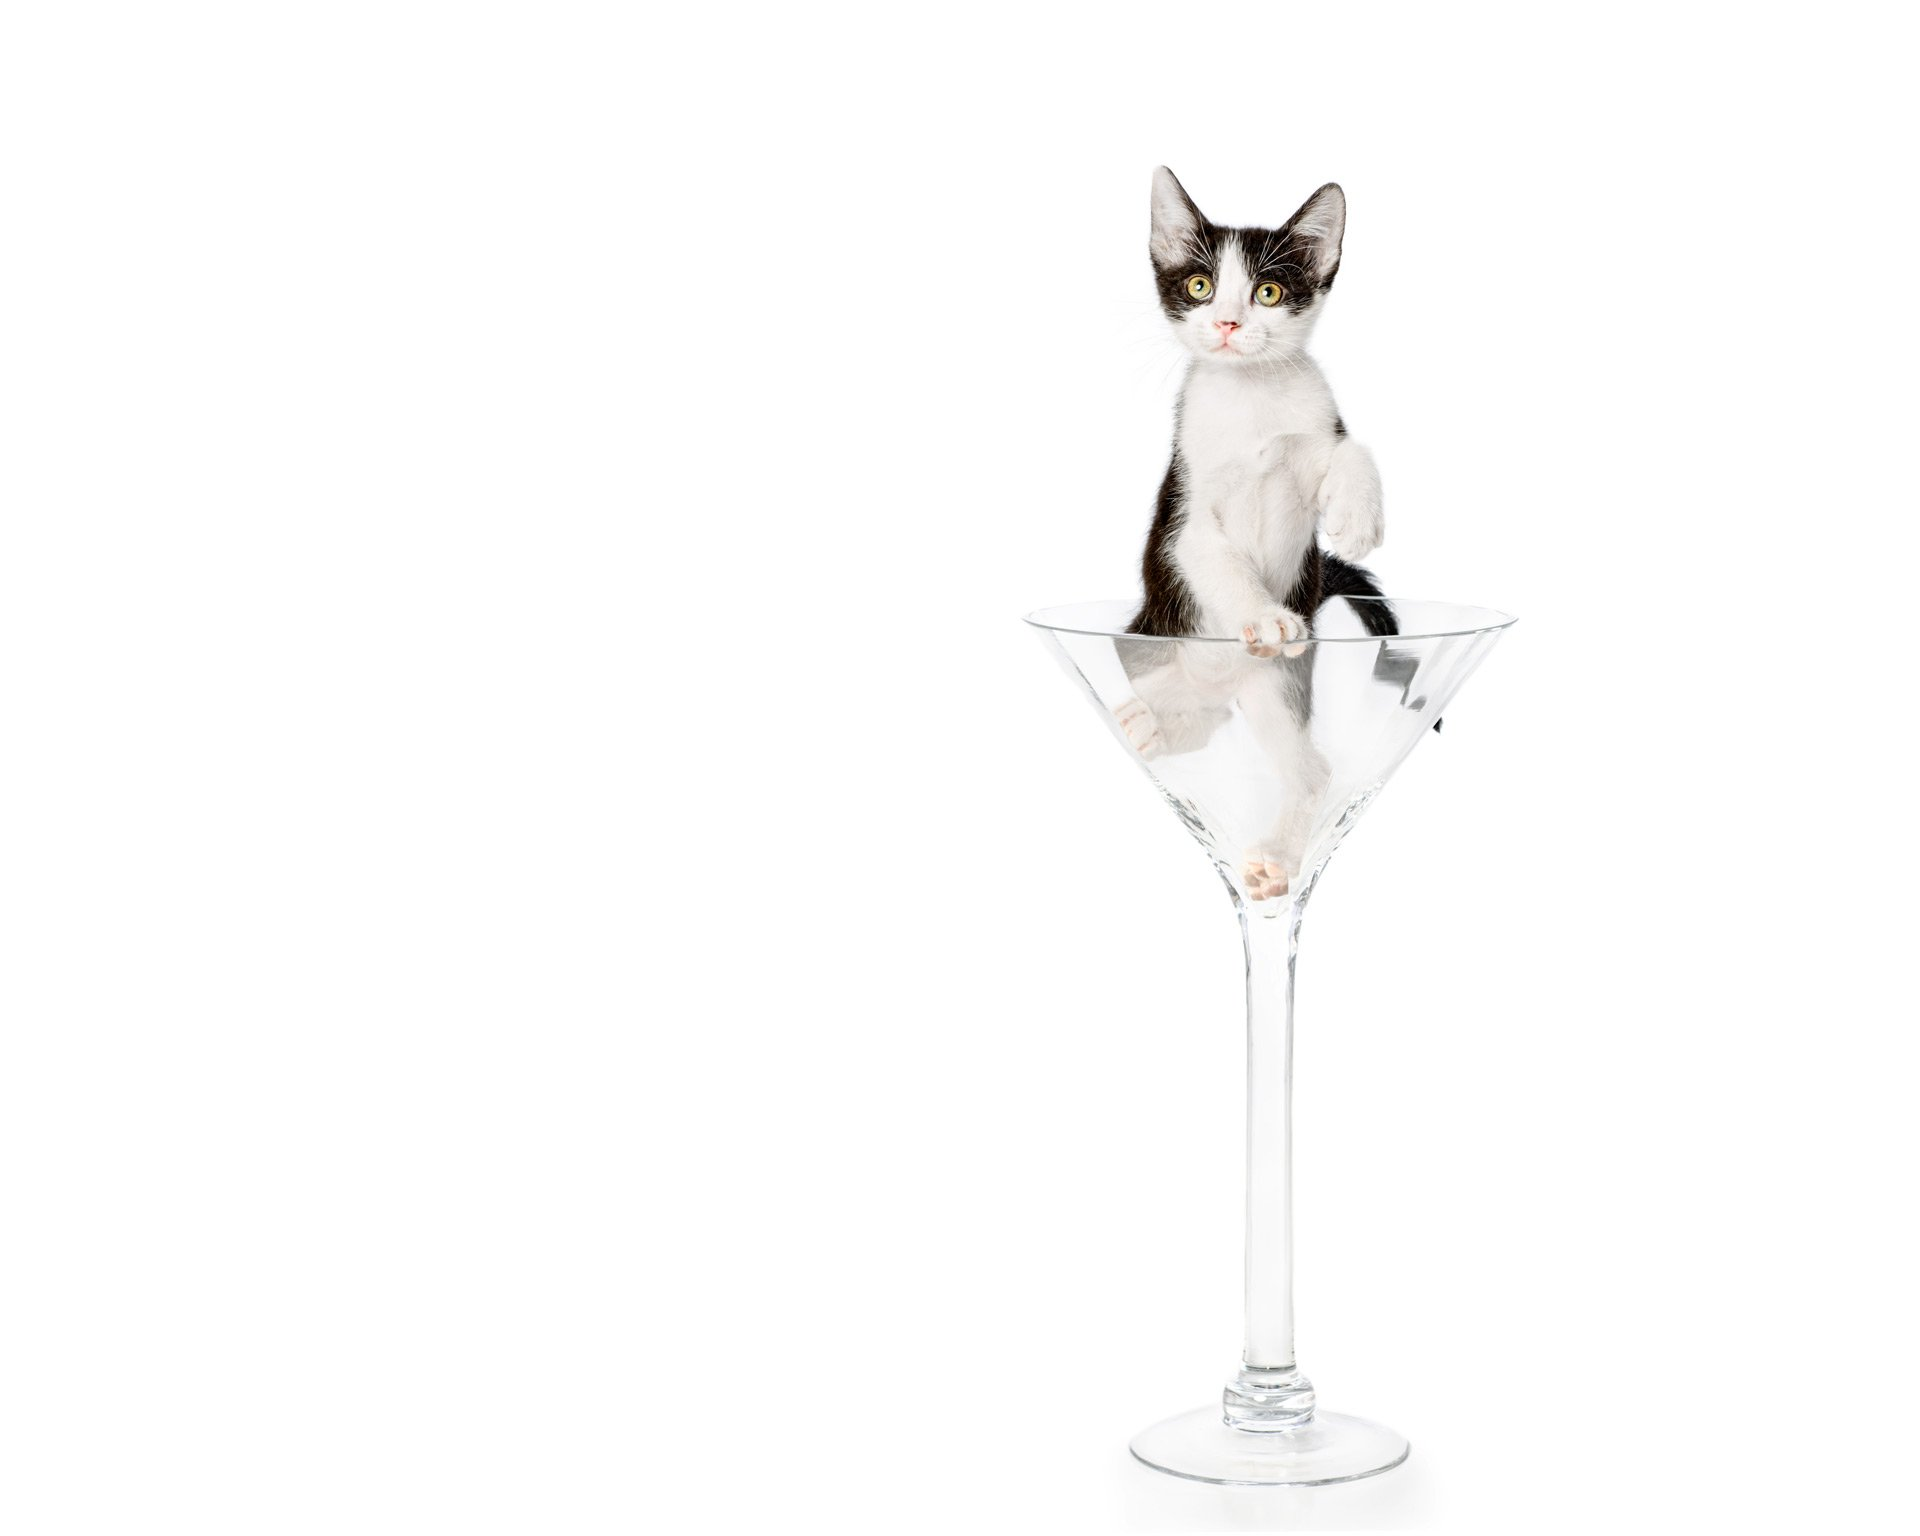 cat-black-and-white-kitten-in-martini-glass